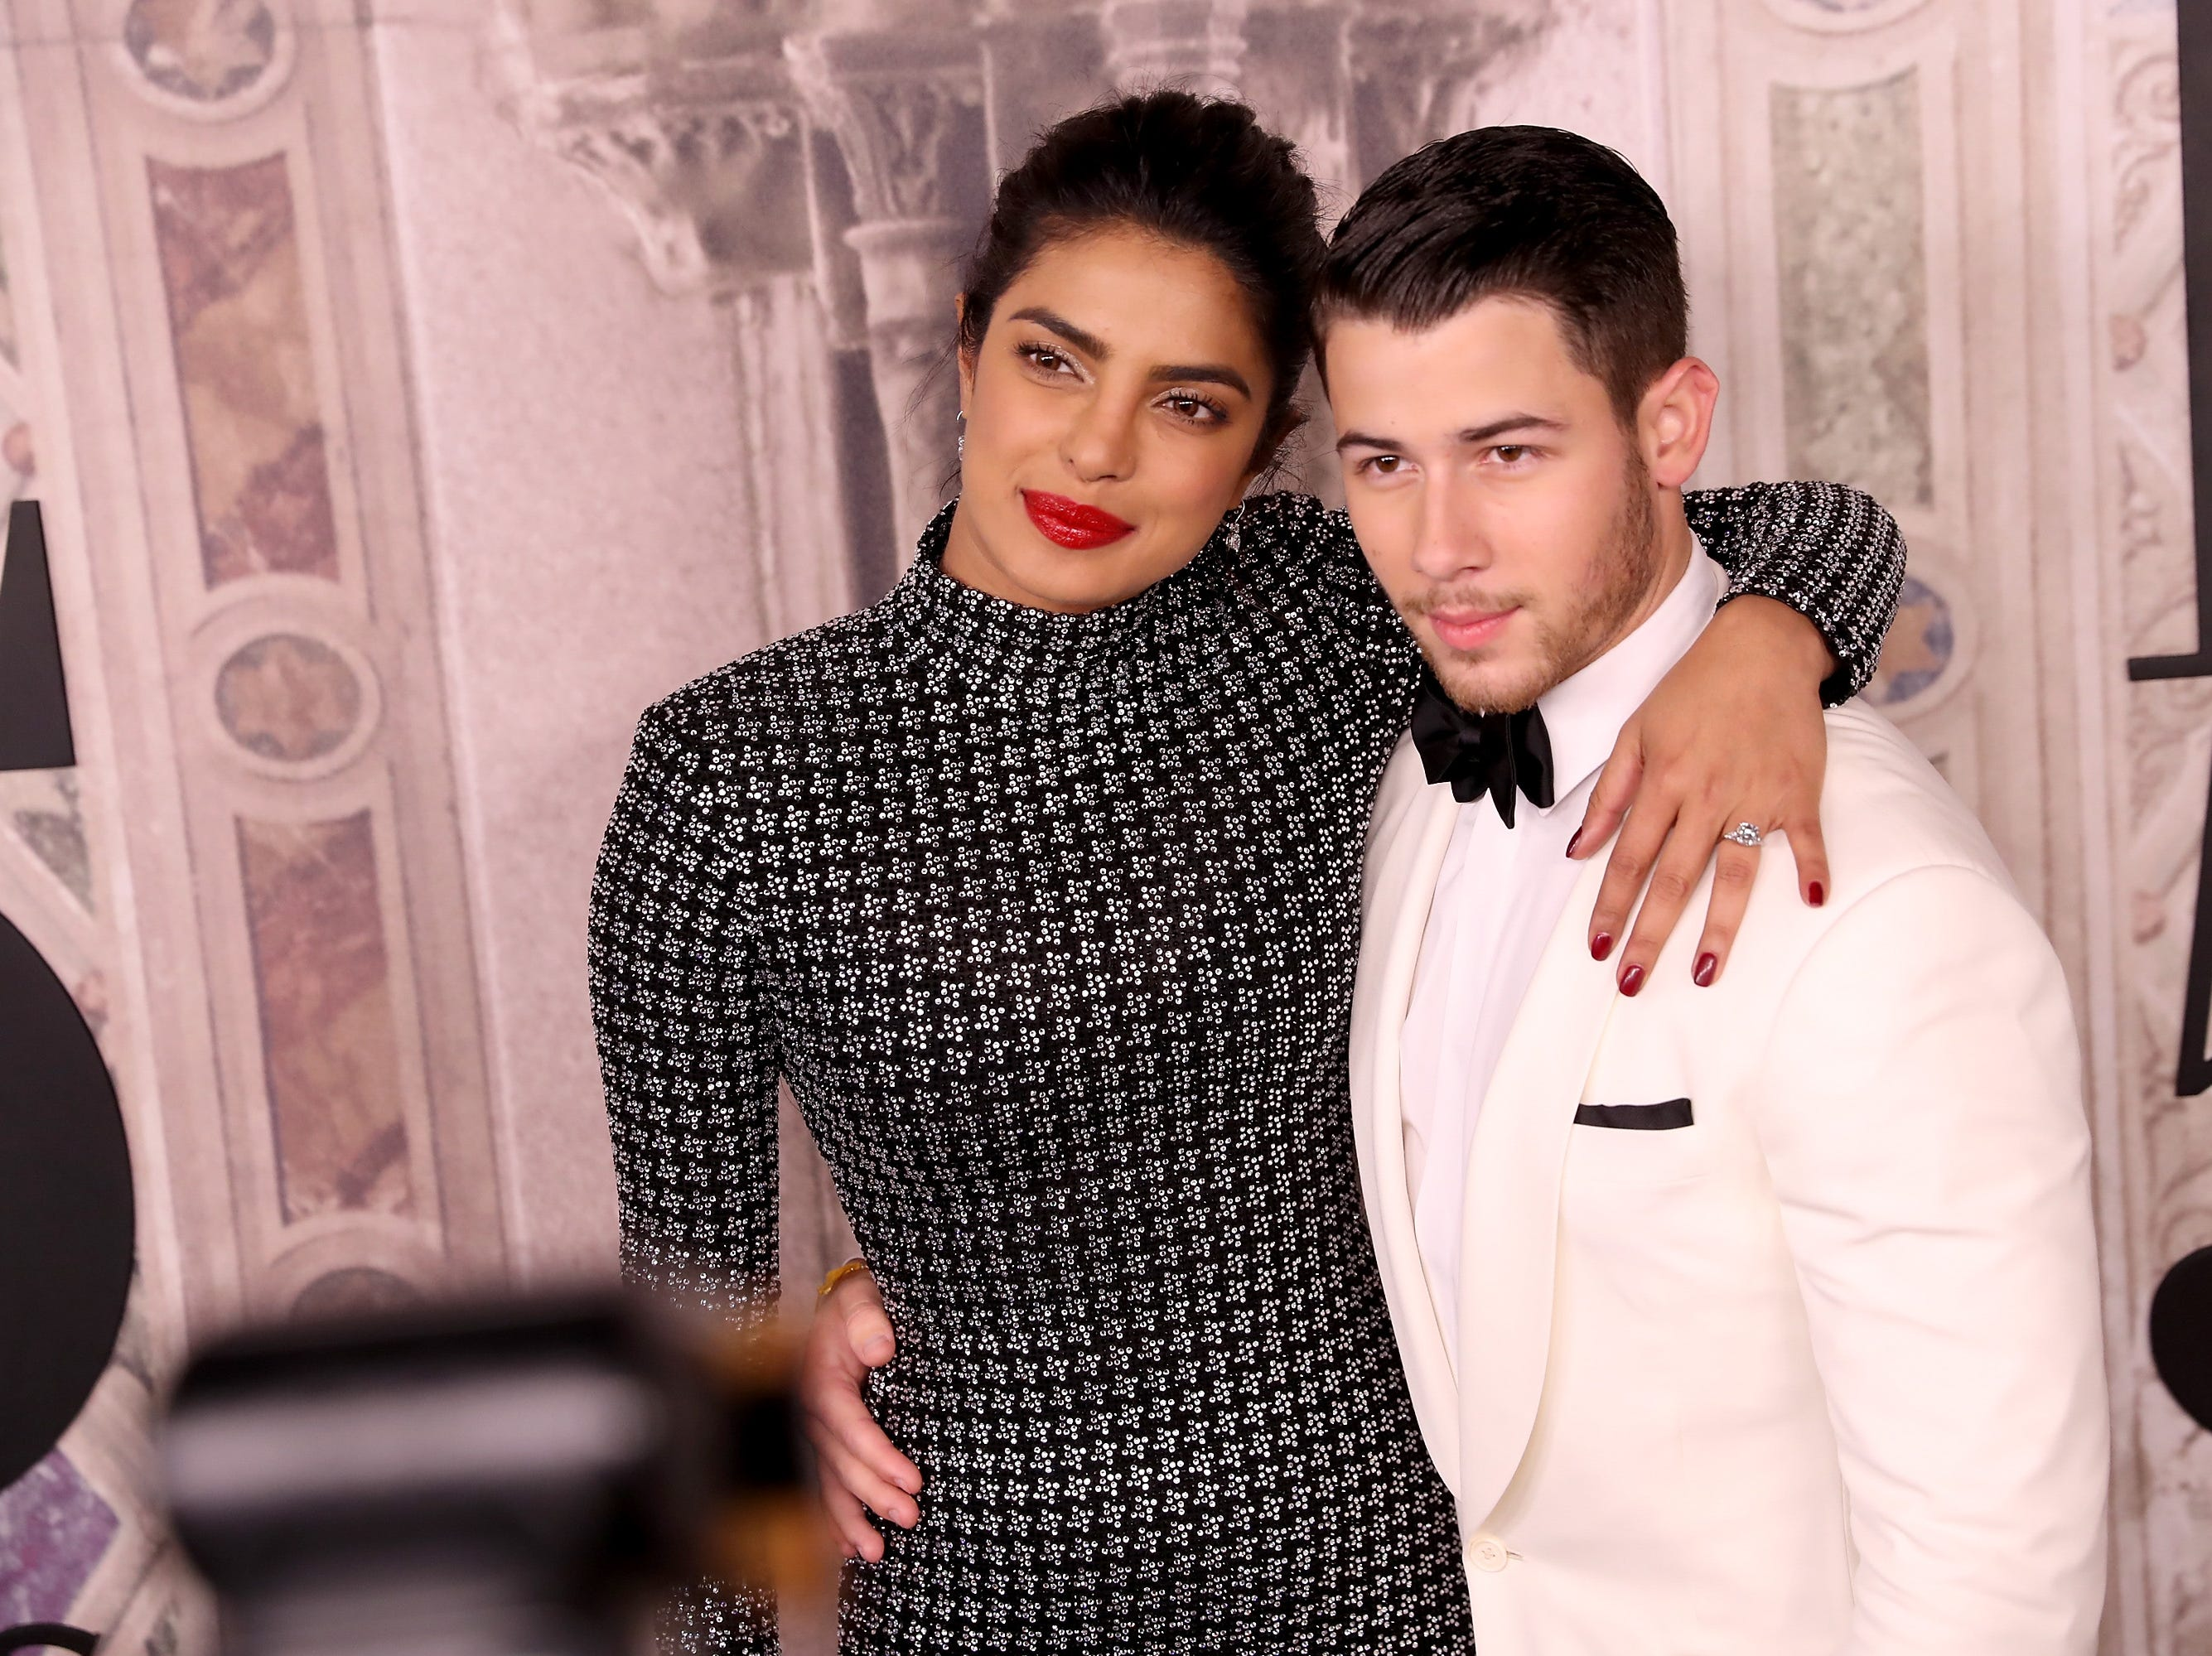 Priyanka Chopra and Nick Jonas attend the Ralph Lauren fashion show during New York Fashion Week in September.